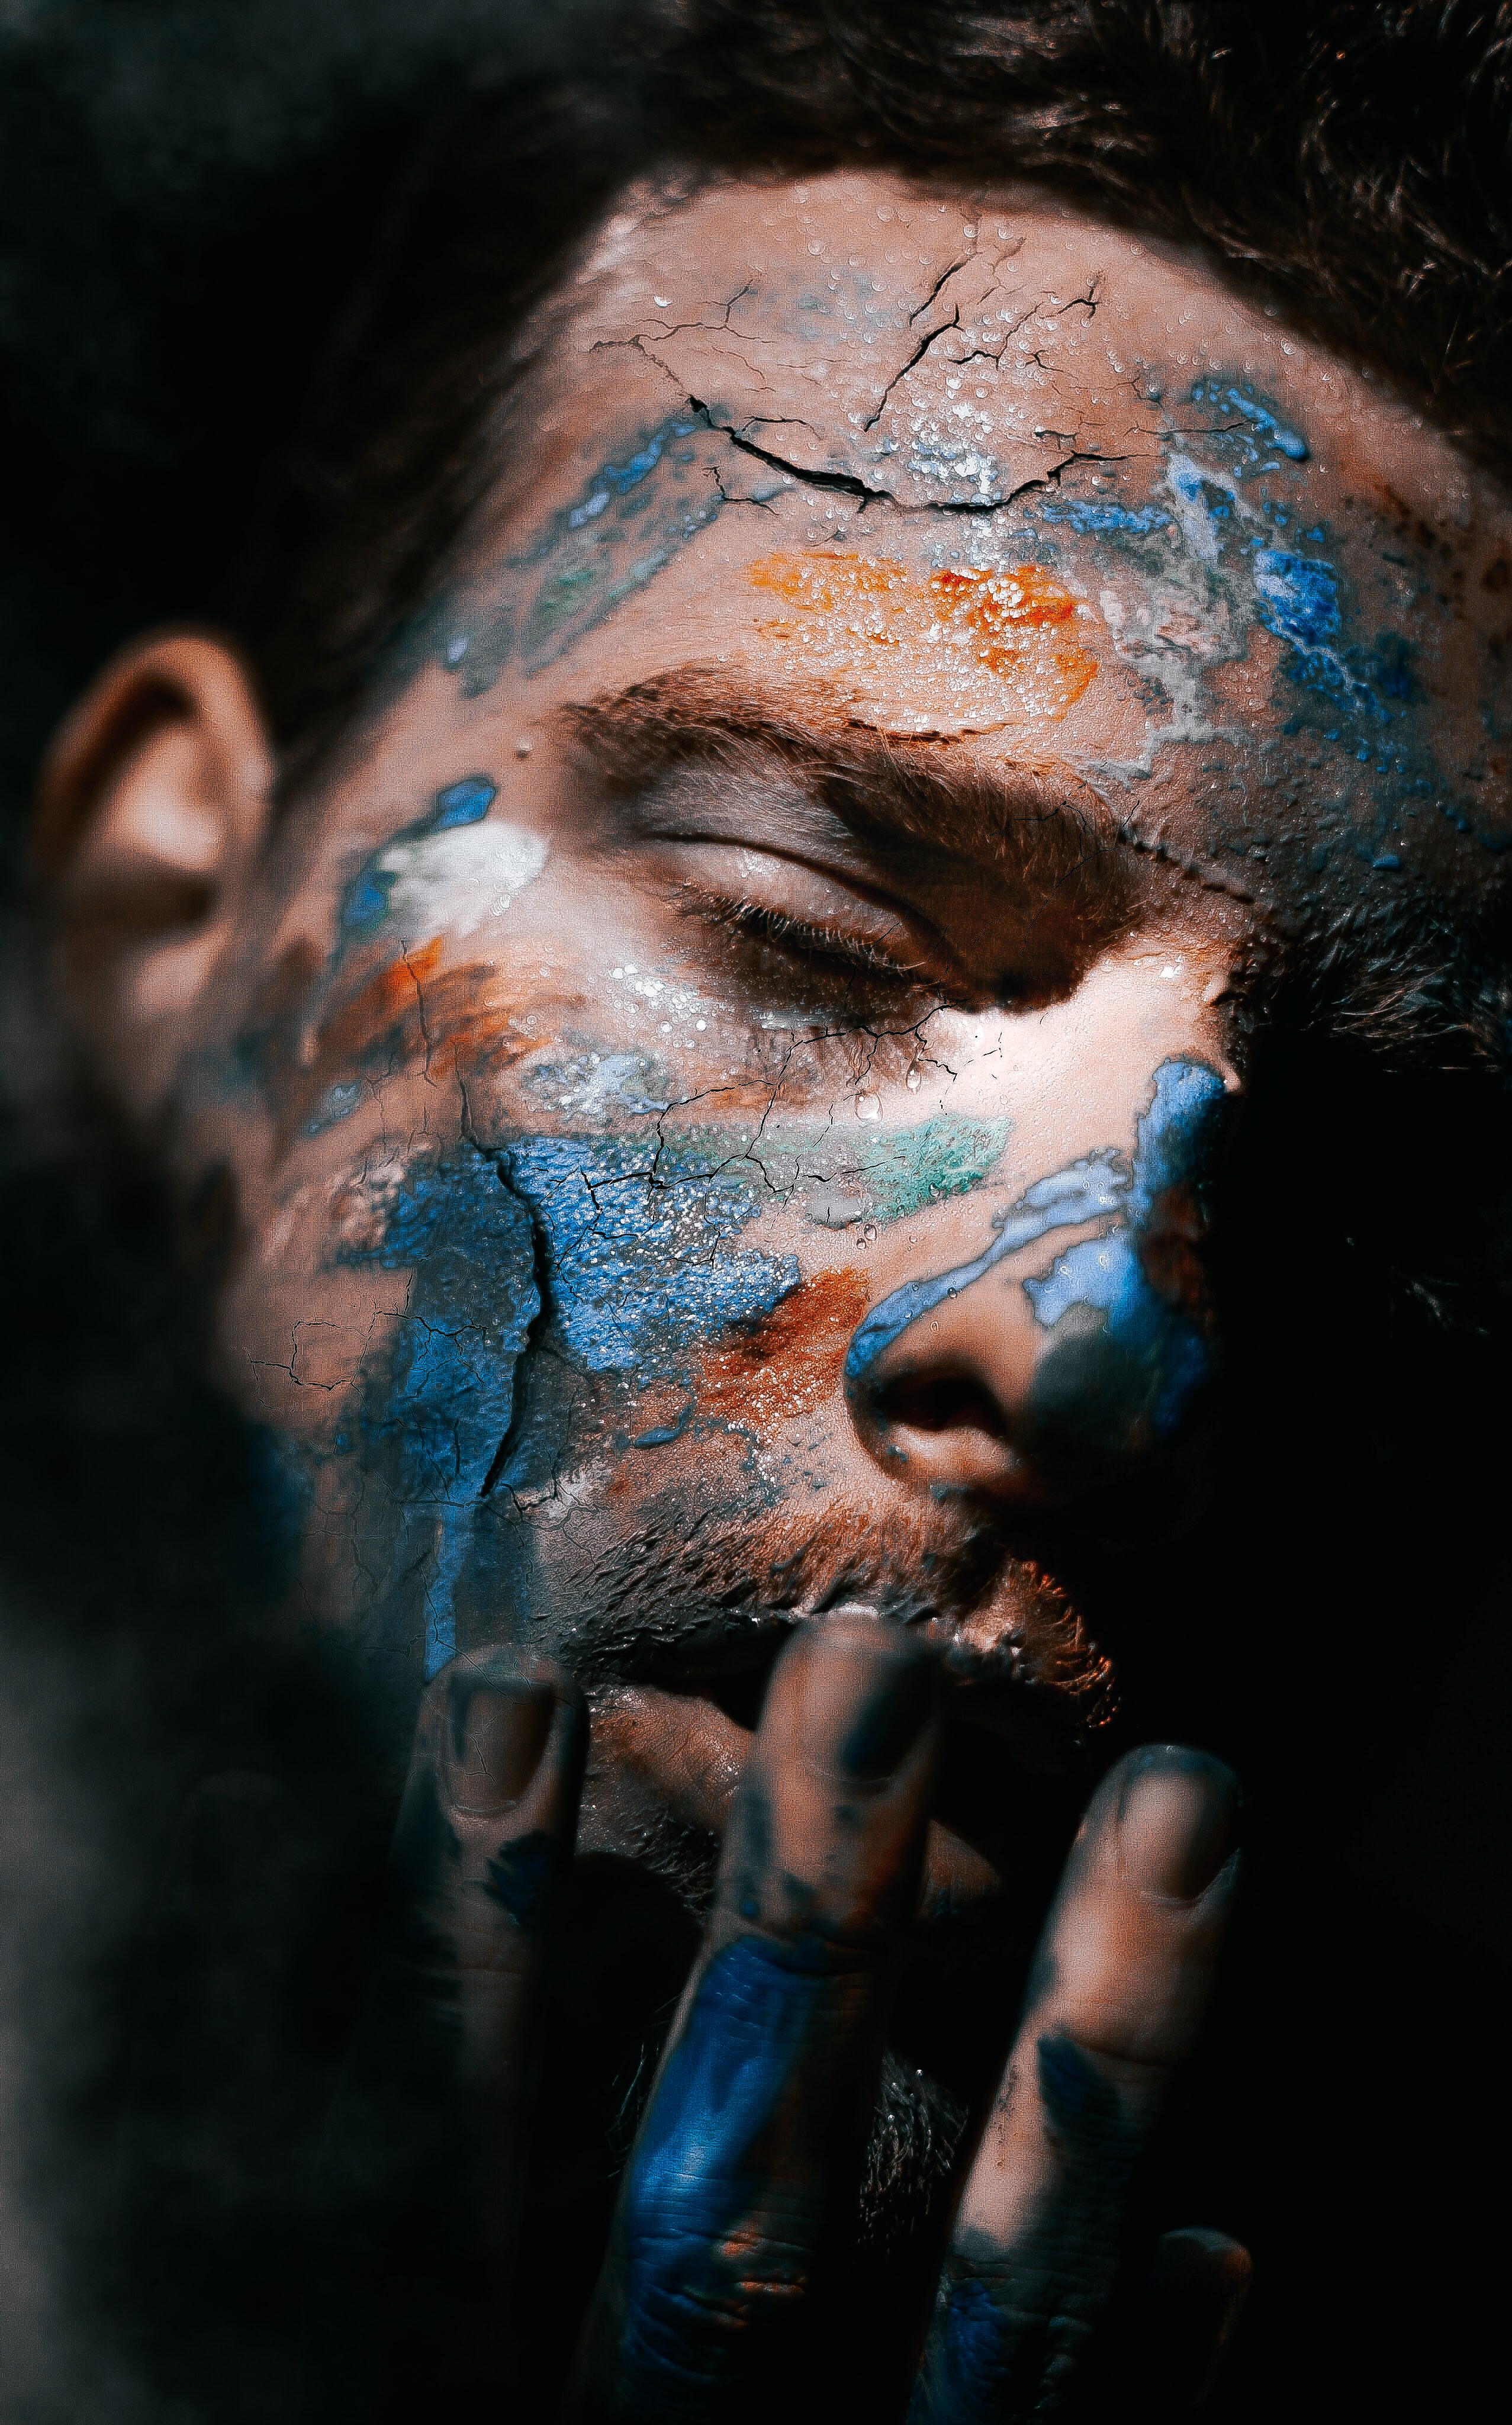 man's face with painting